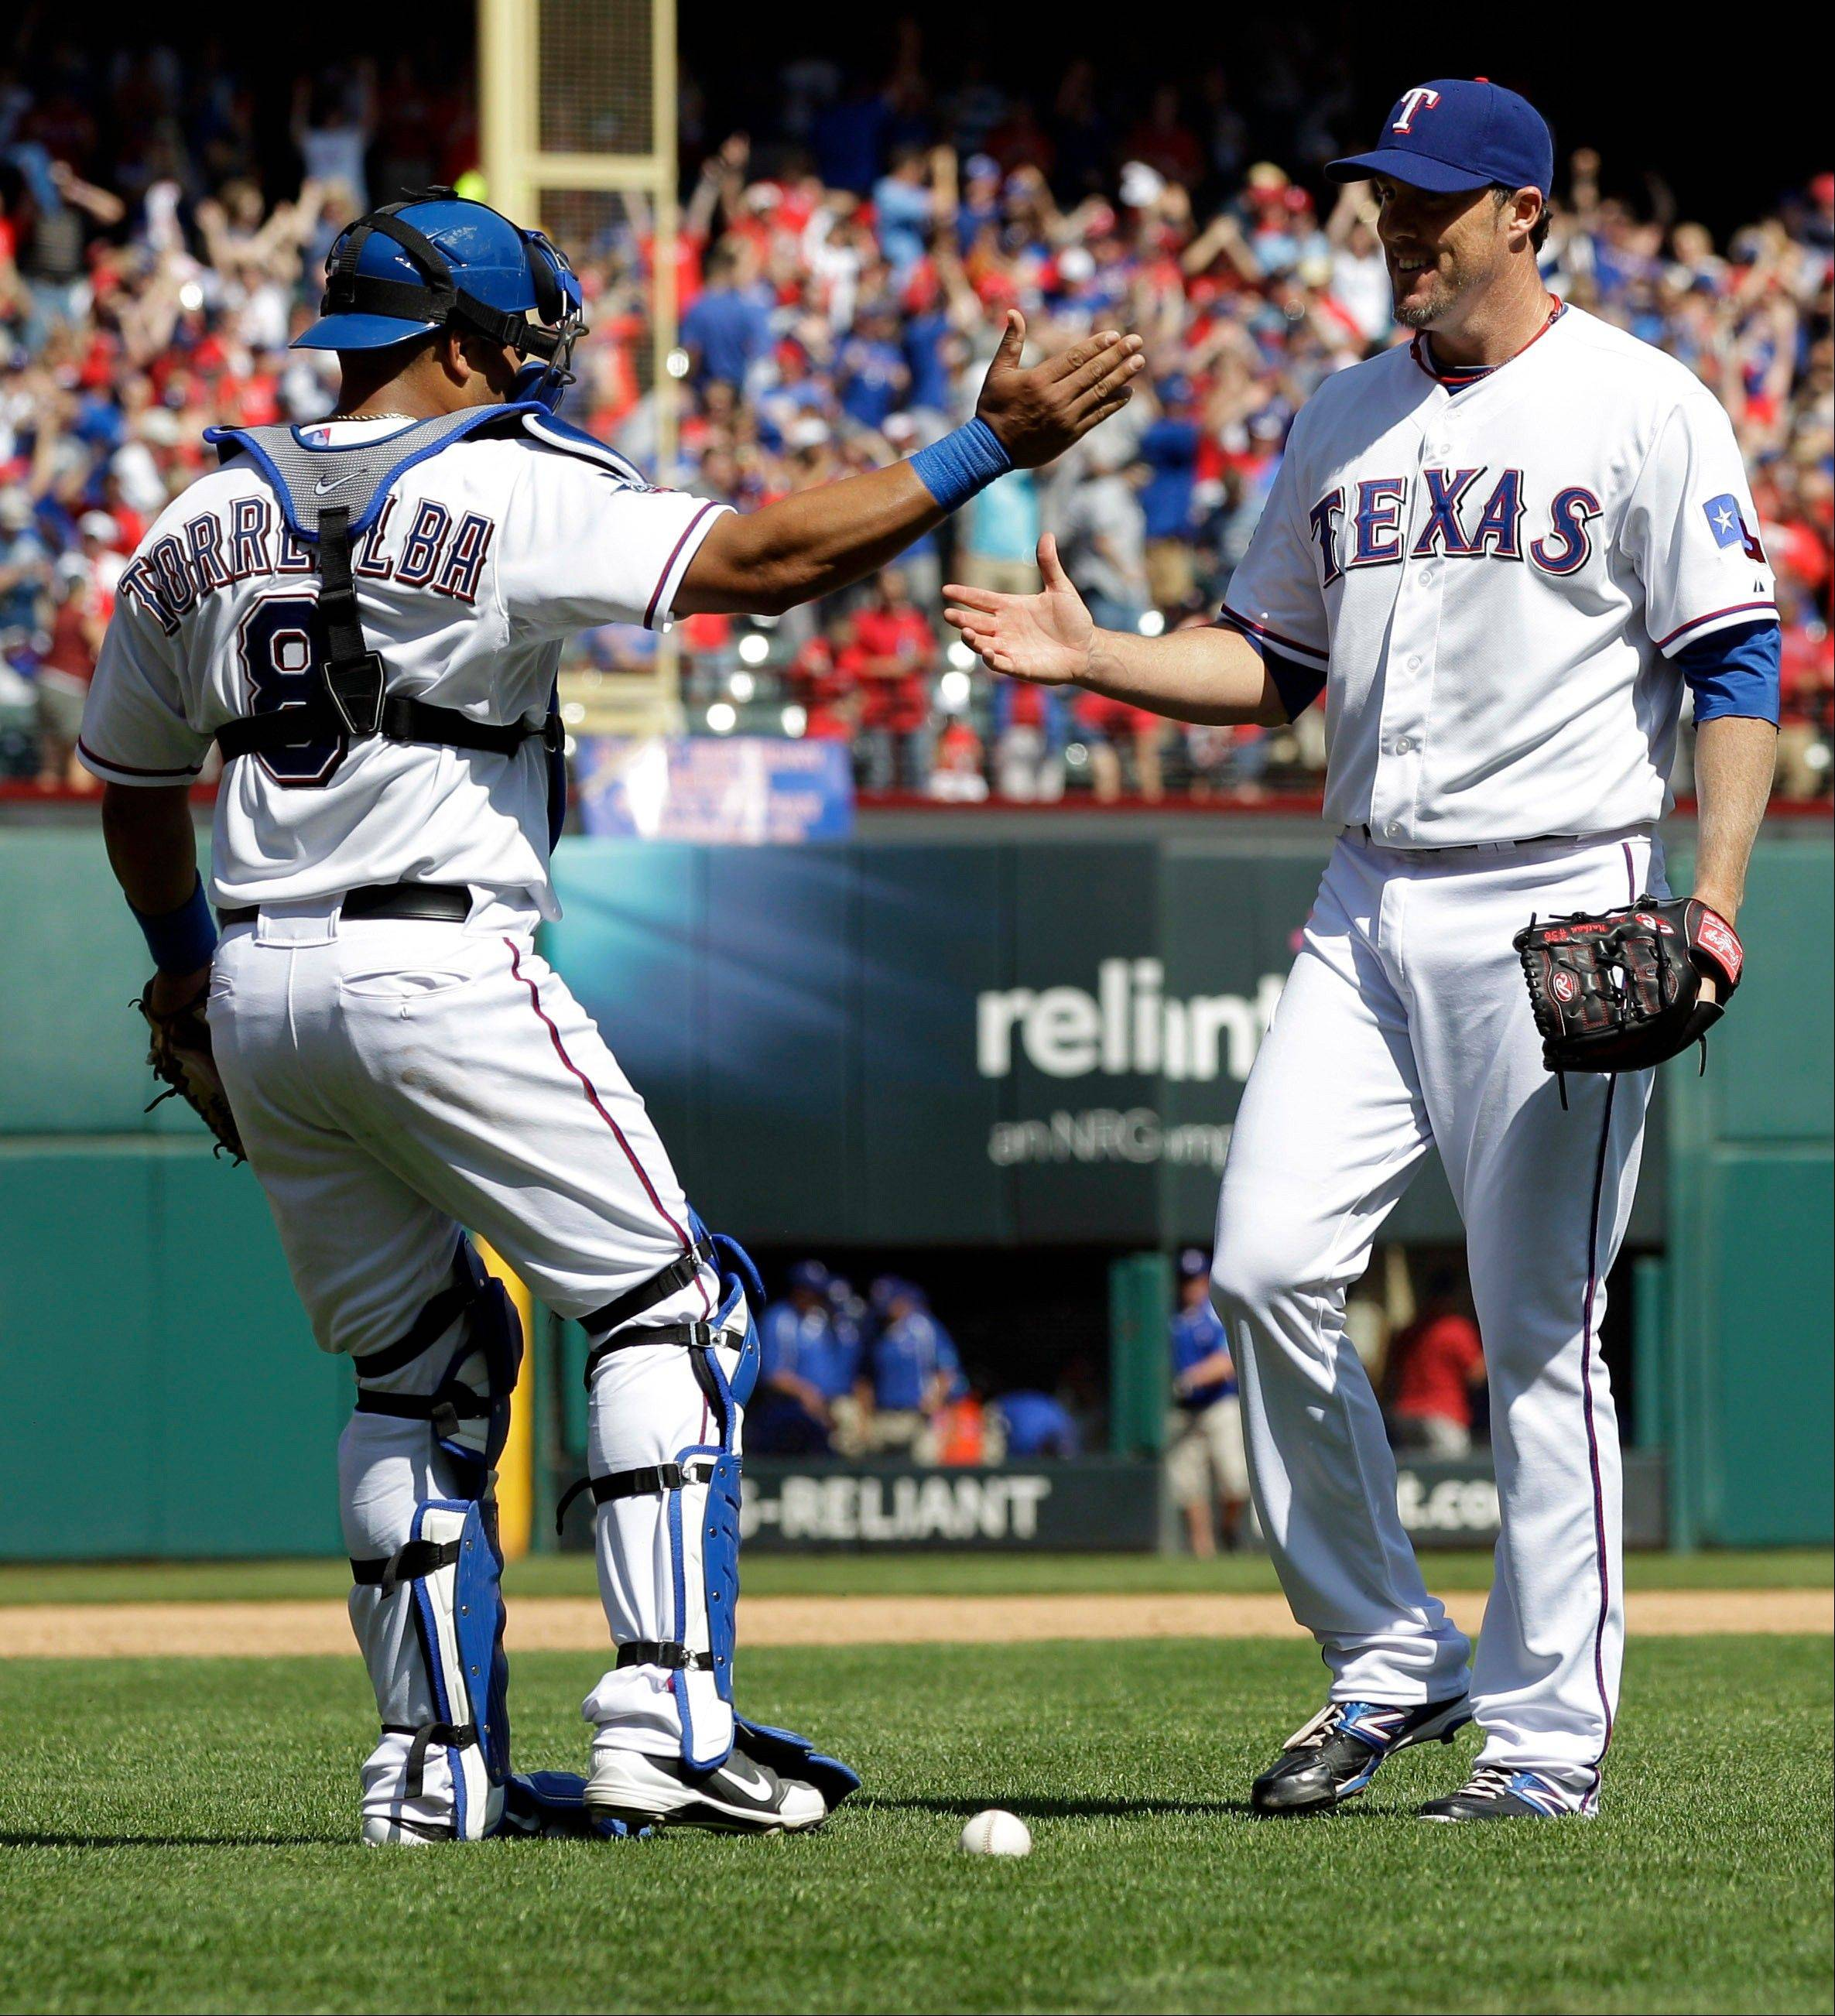 Texas Rangers catcher Yorvit Torrealba (8) and closer Joe Nathan (36) react after defeating the Chicago White Sox 3-2 in a baseball game, Friday, April 6, 2012, in Arlington, Texas.